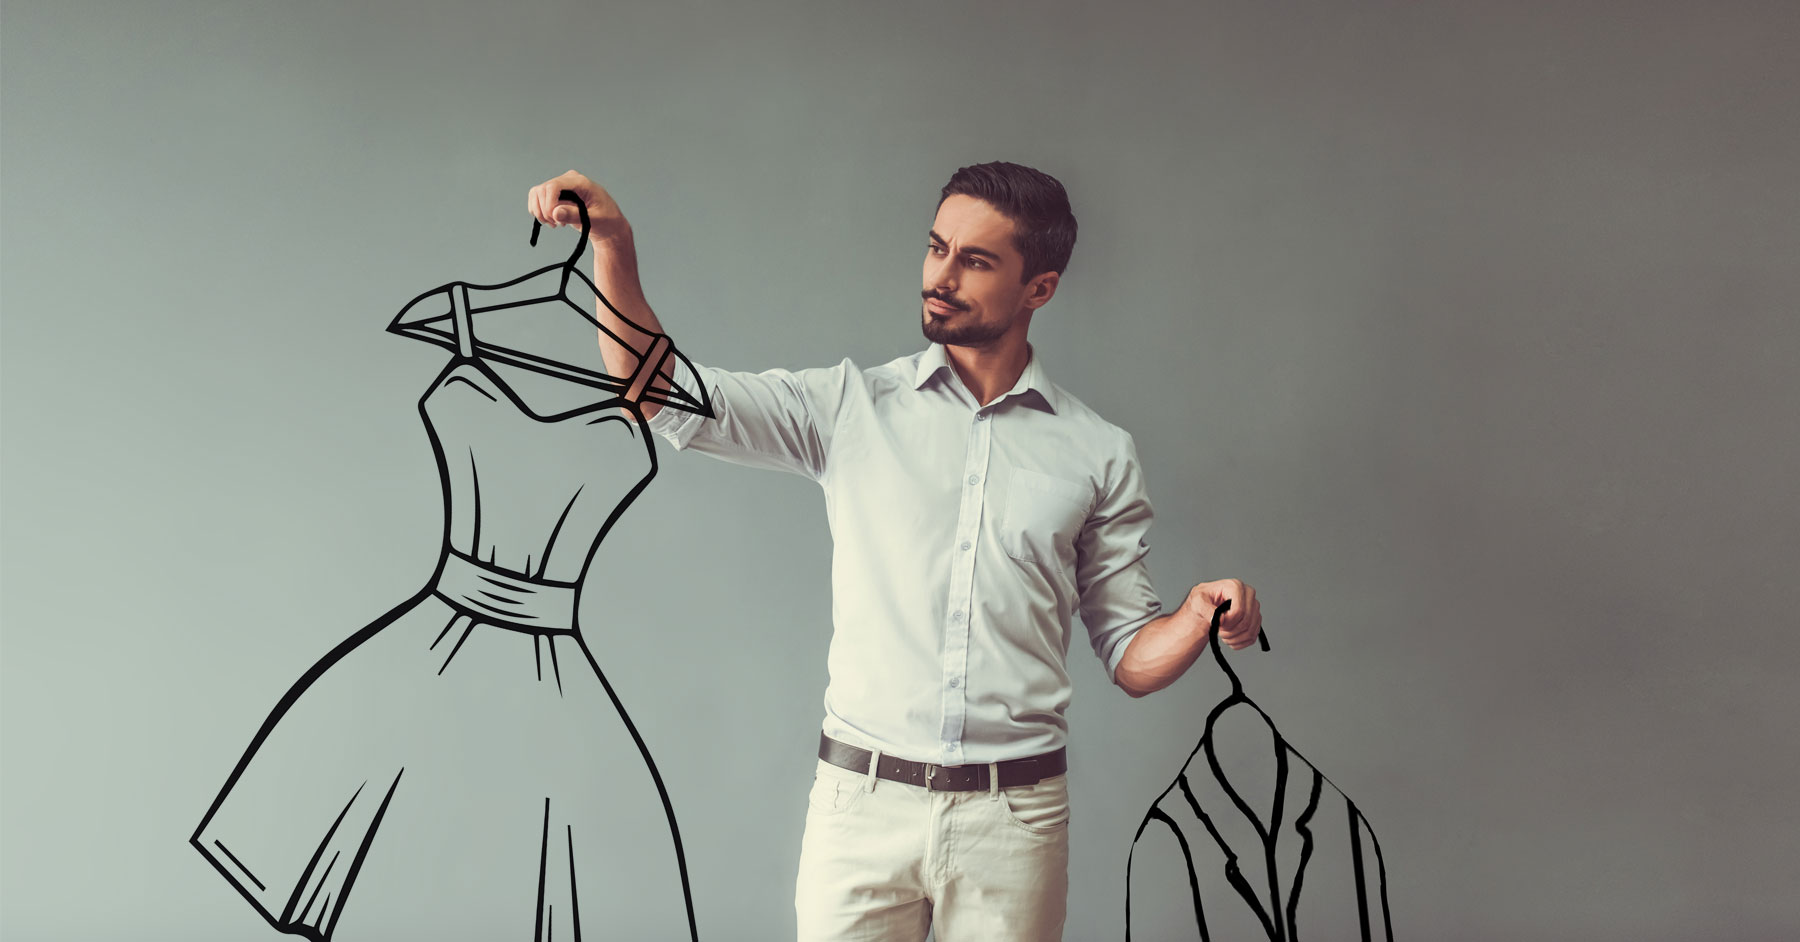 Redefining Masculinity: Men in frilly dresses?